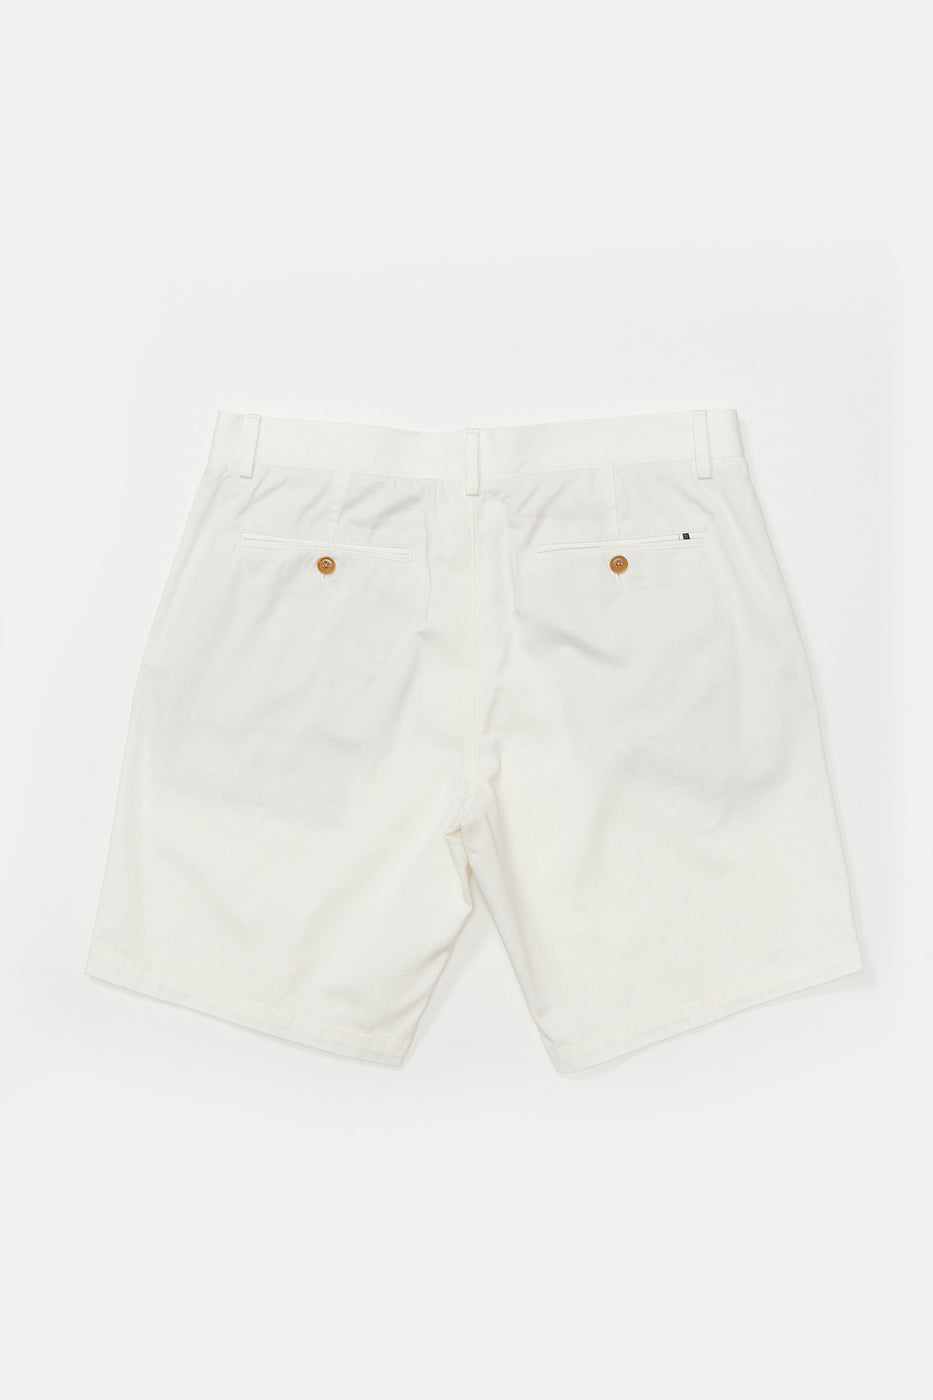 Load image into Gallery viewer, Gwinnett Slim Fit Chino Shorts in White